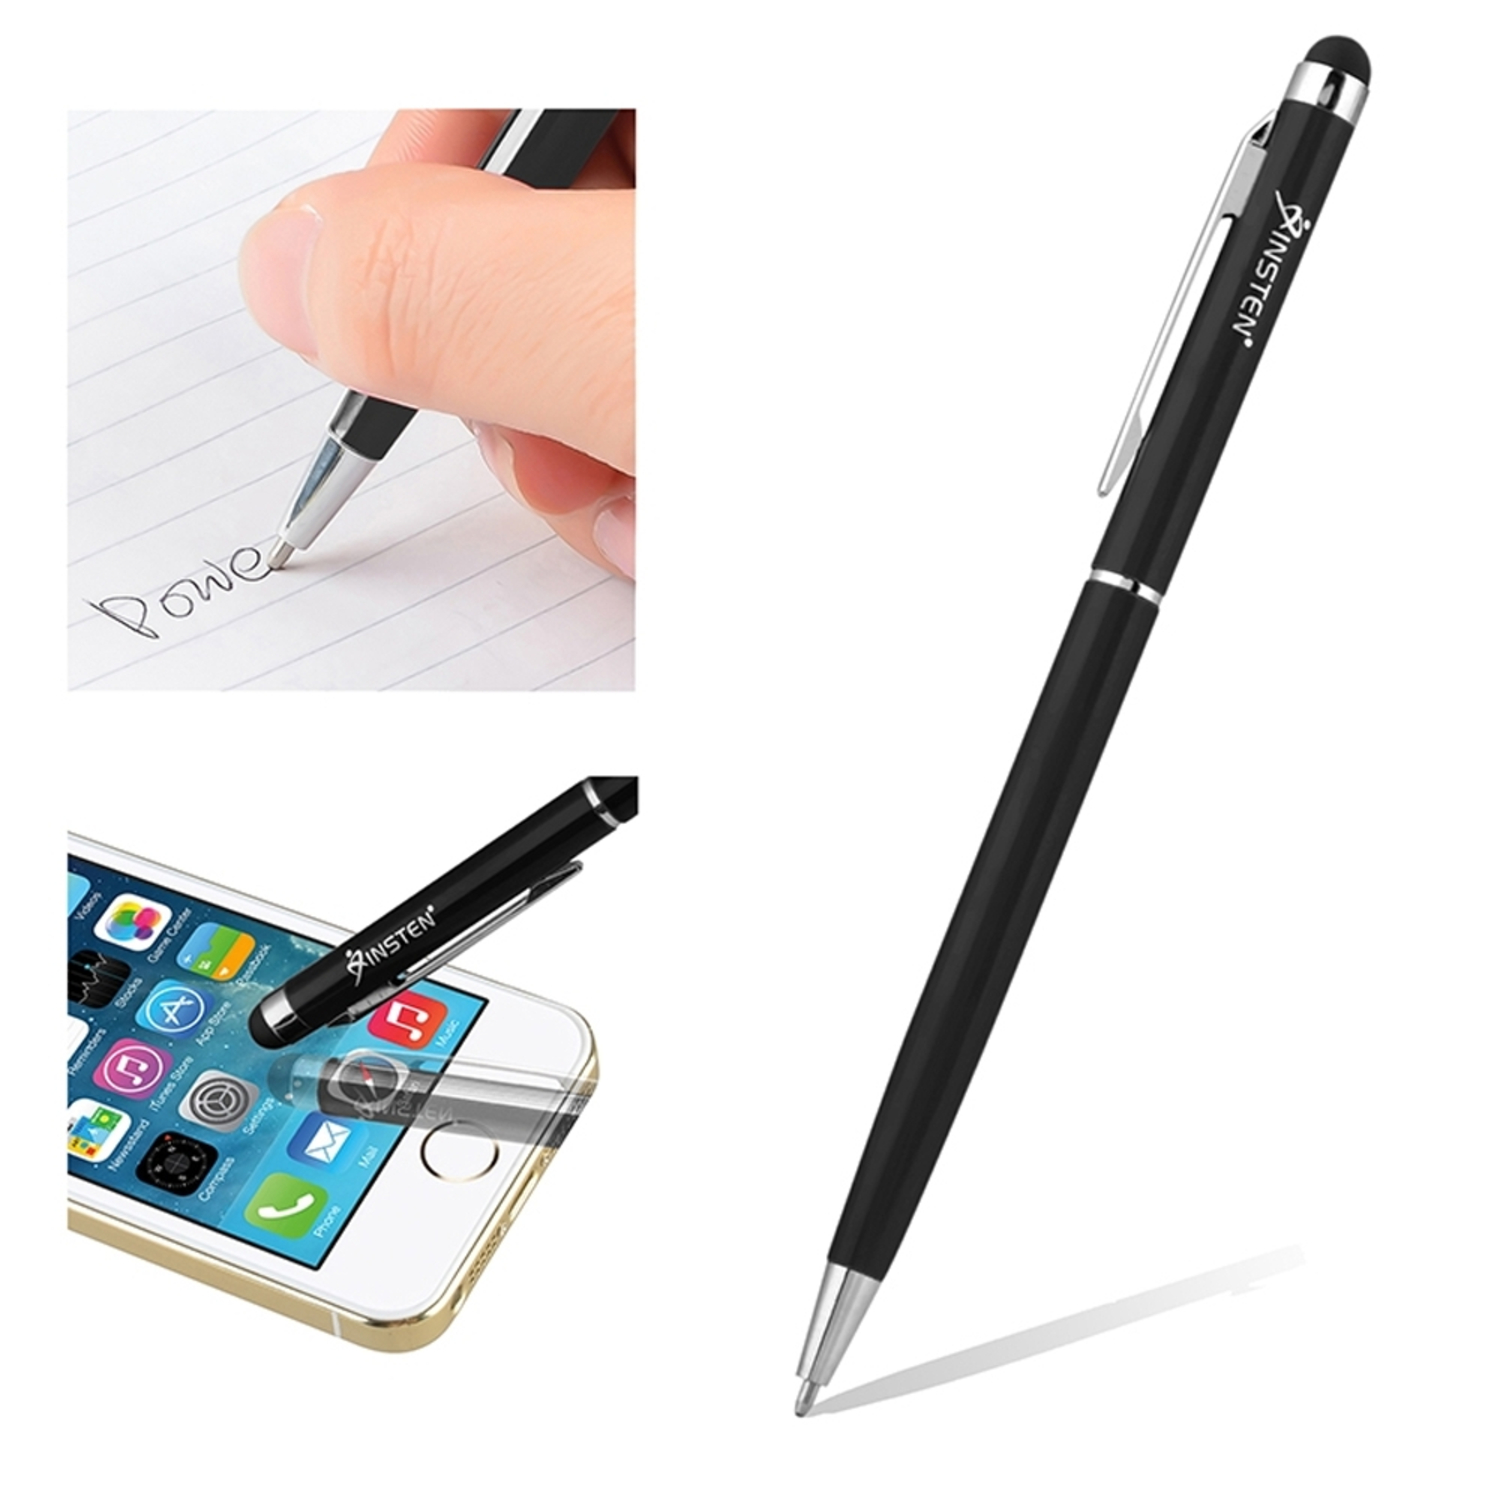 Insten Black 2-in-1 Capacitive Stylus with Ball Point Pen For Tablet Smartphone...